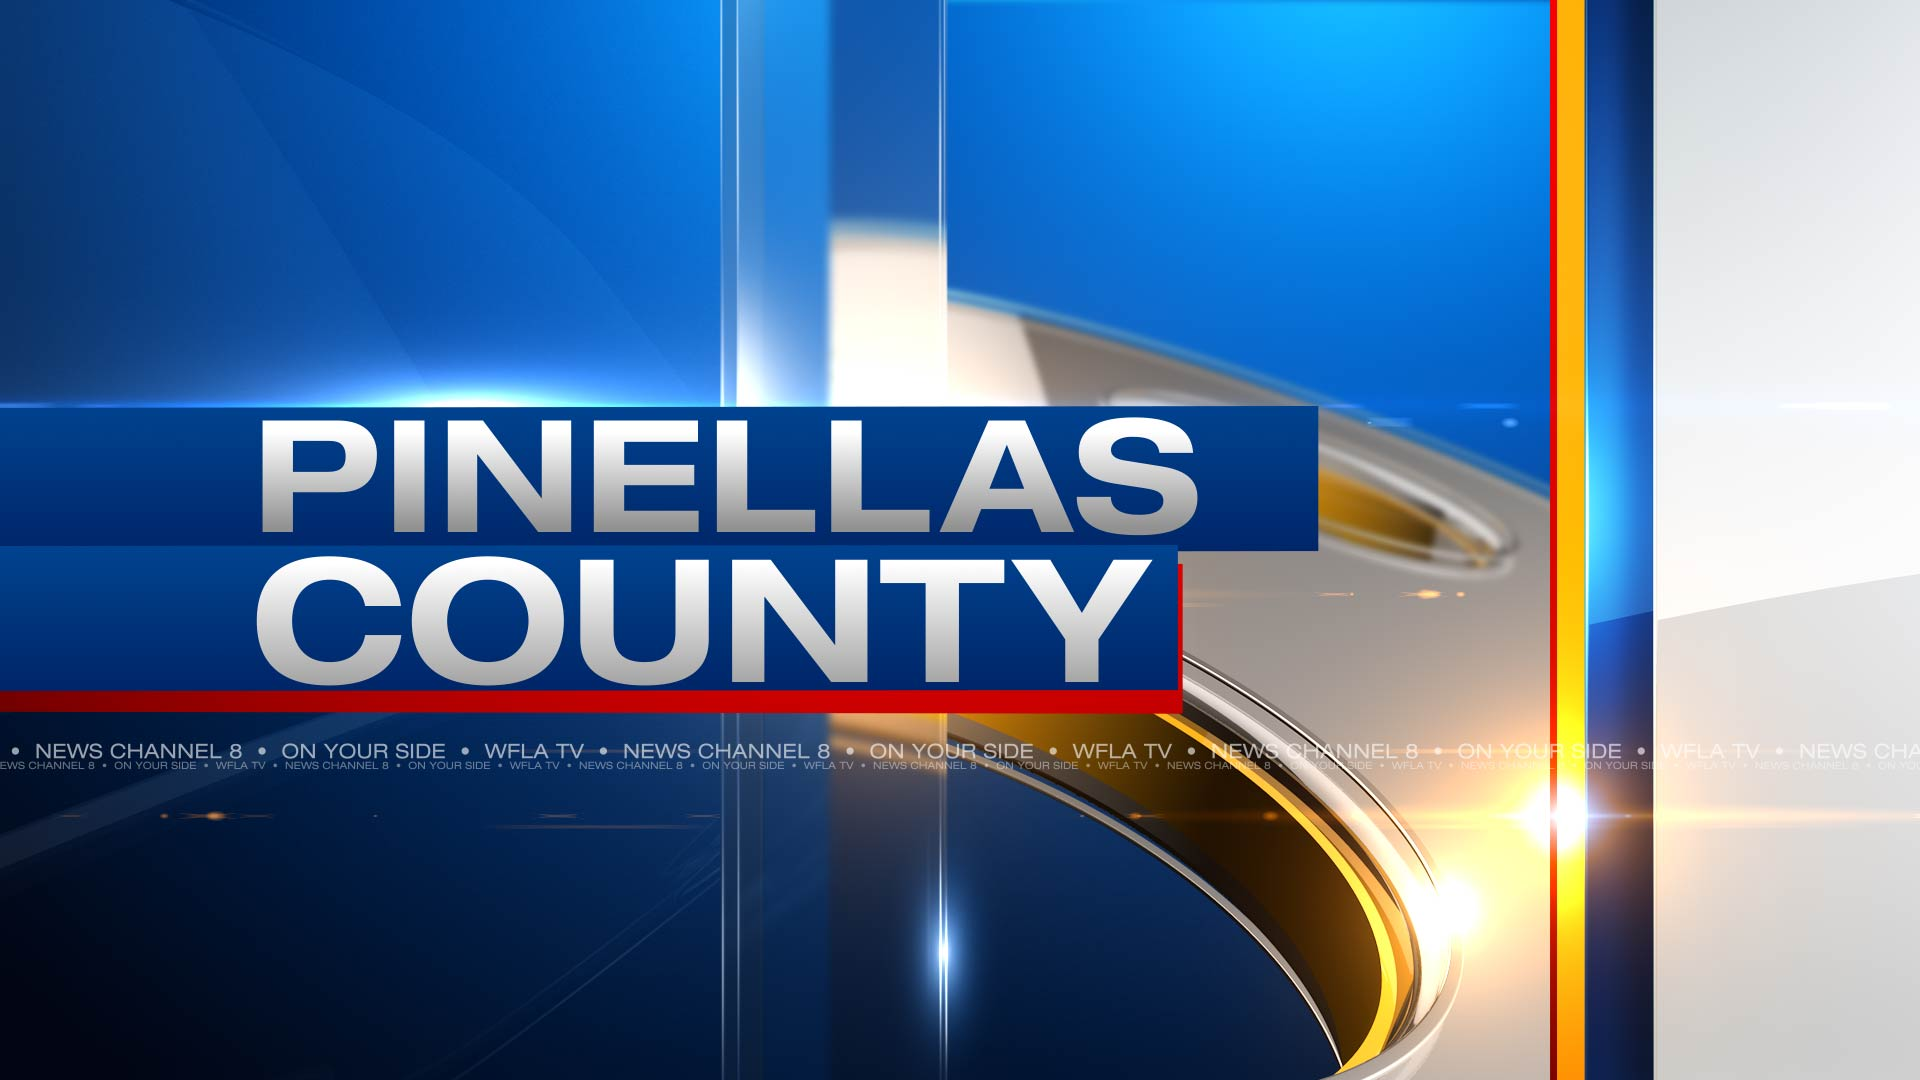 county-pinellas_229963